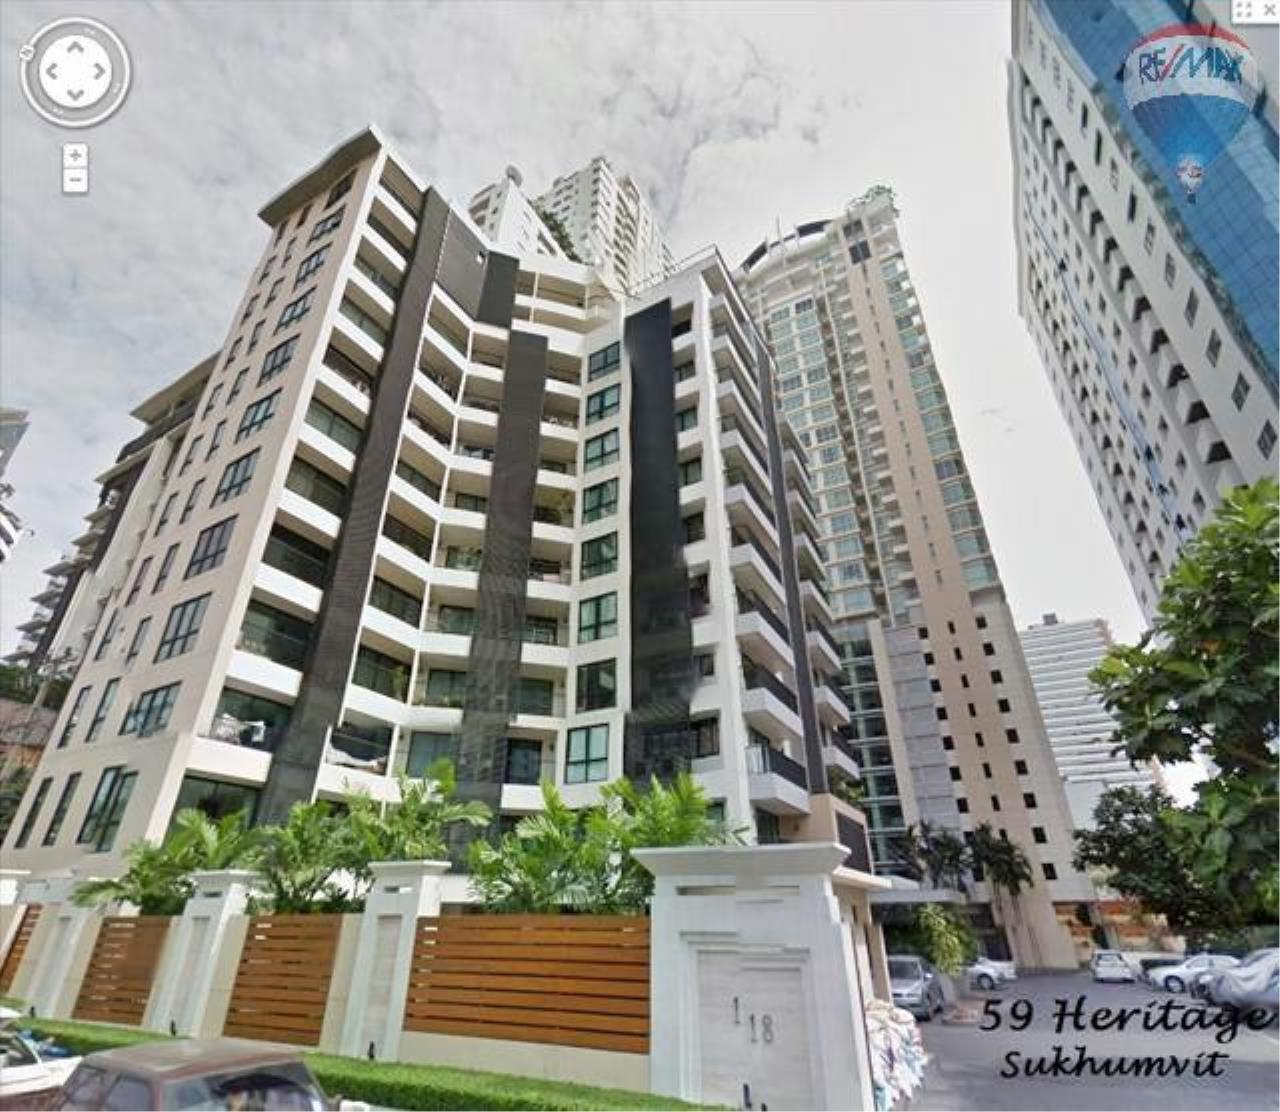 RE/MAX Properties Agency's Condominium for rent 2 bedrooms 81.26 Sq.m. at 59 Heritage 18